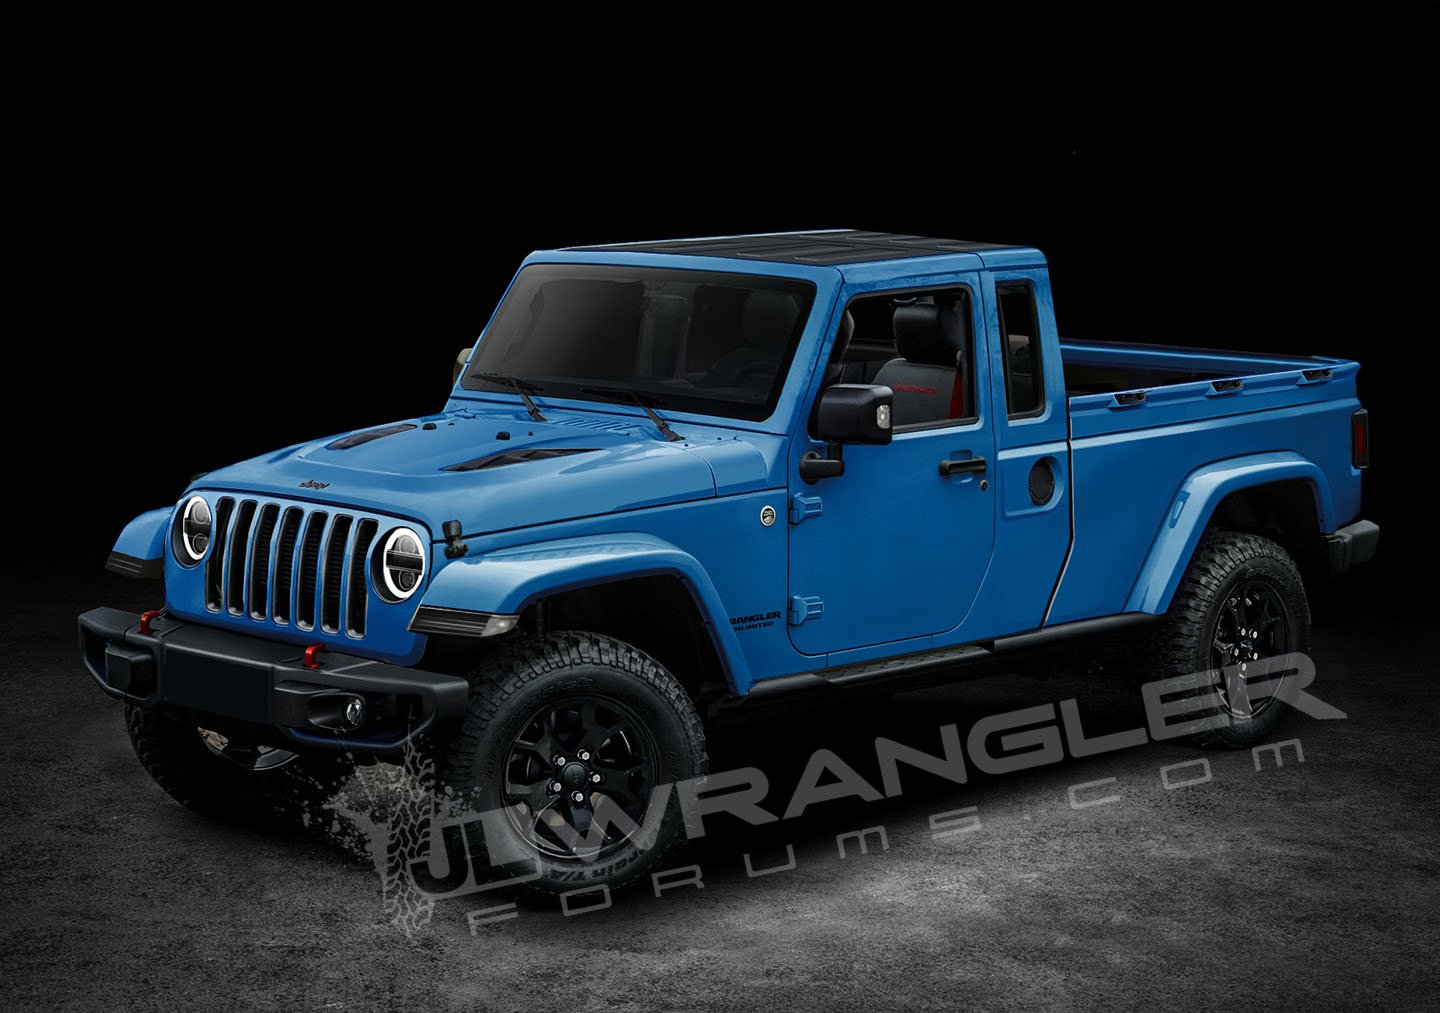 2019 jeep wrangler pickup looks scrambler rific in latest renderings carscoops. Black Bedroom Furniture Sets. Home Design Ideas